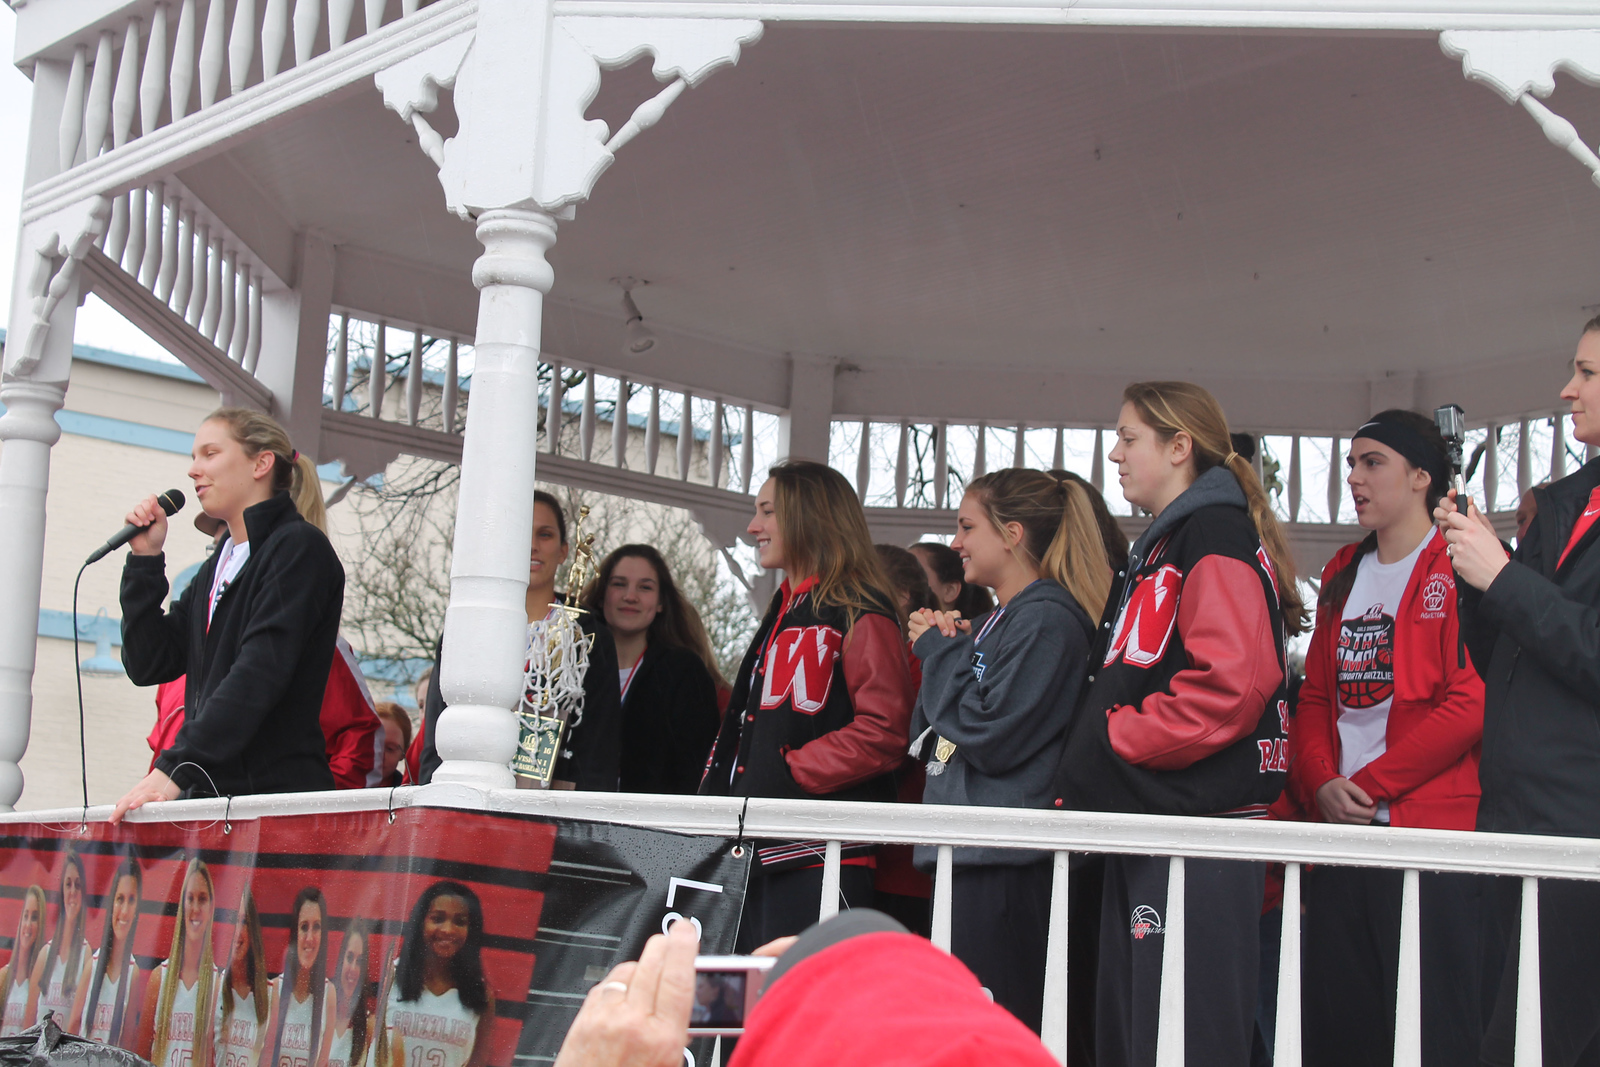 LAWRENCE PANTAGES / GAZETTE Jodi Johnson expressed her thanks to the community for its support of the Wadsworth High School girls basketball team after it returned Sunday afternoon from capturing the state title on Saturday night.